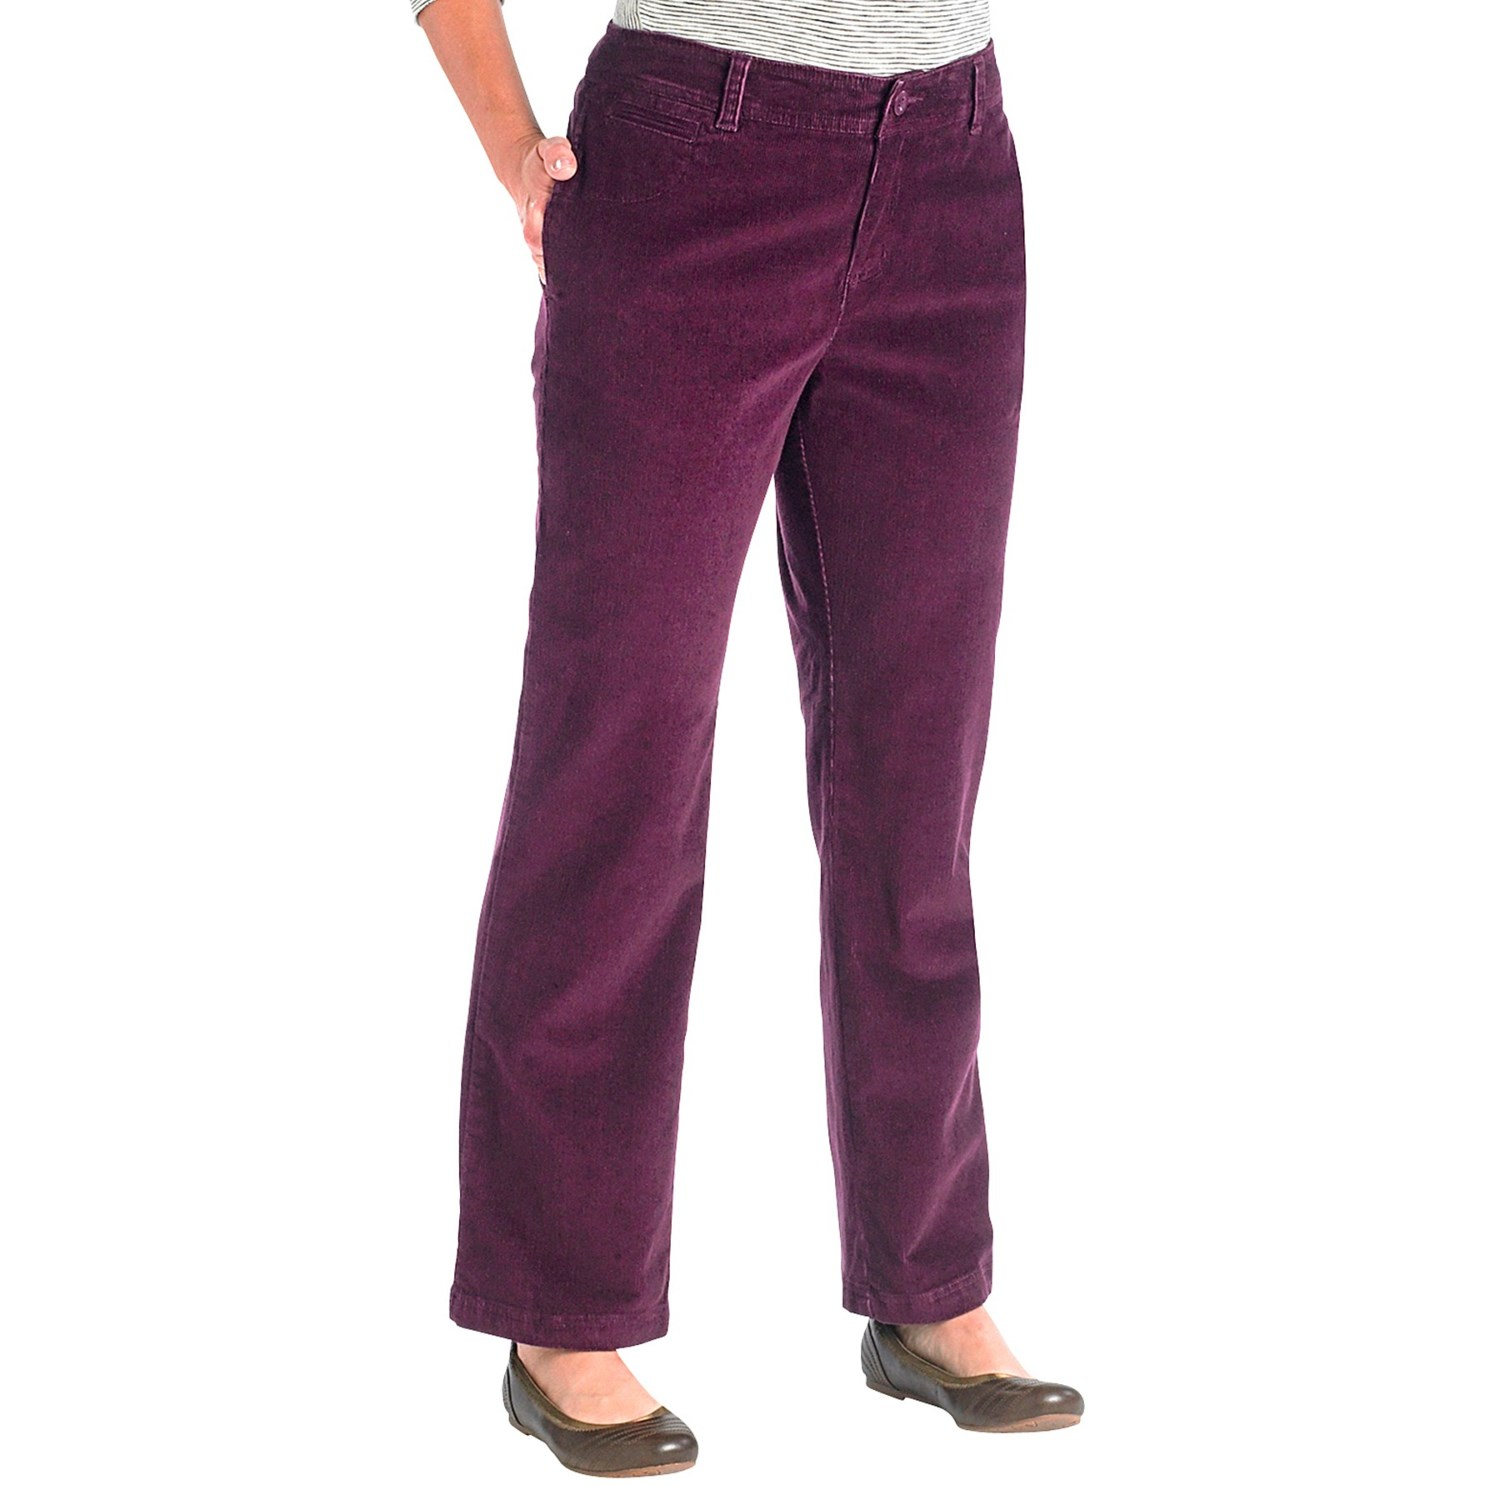 Luxury Women39s HighRise Flared Corduroy Pants  From OLD NAVY